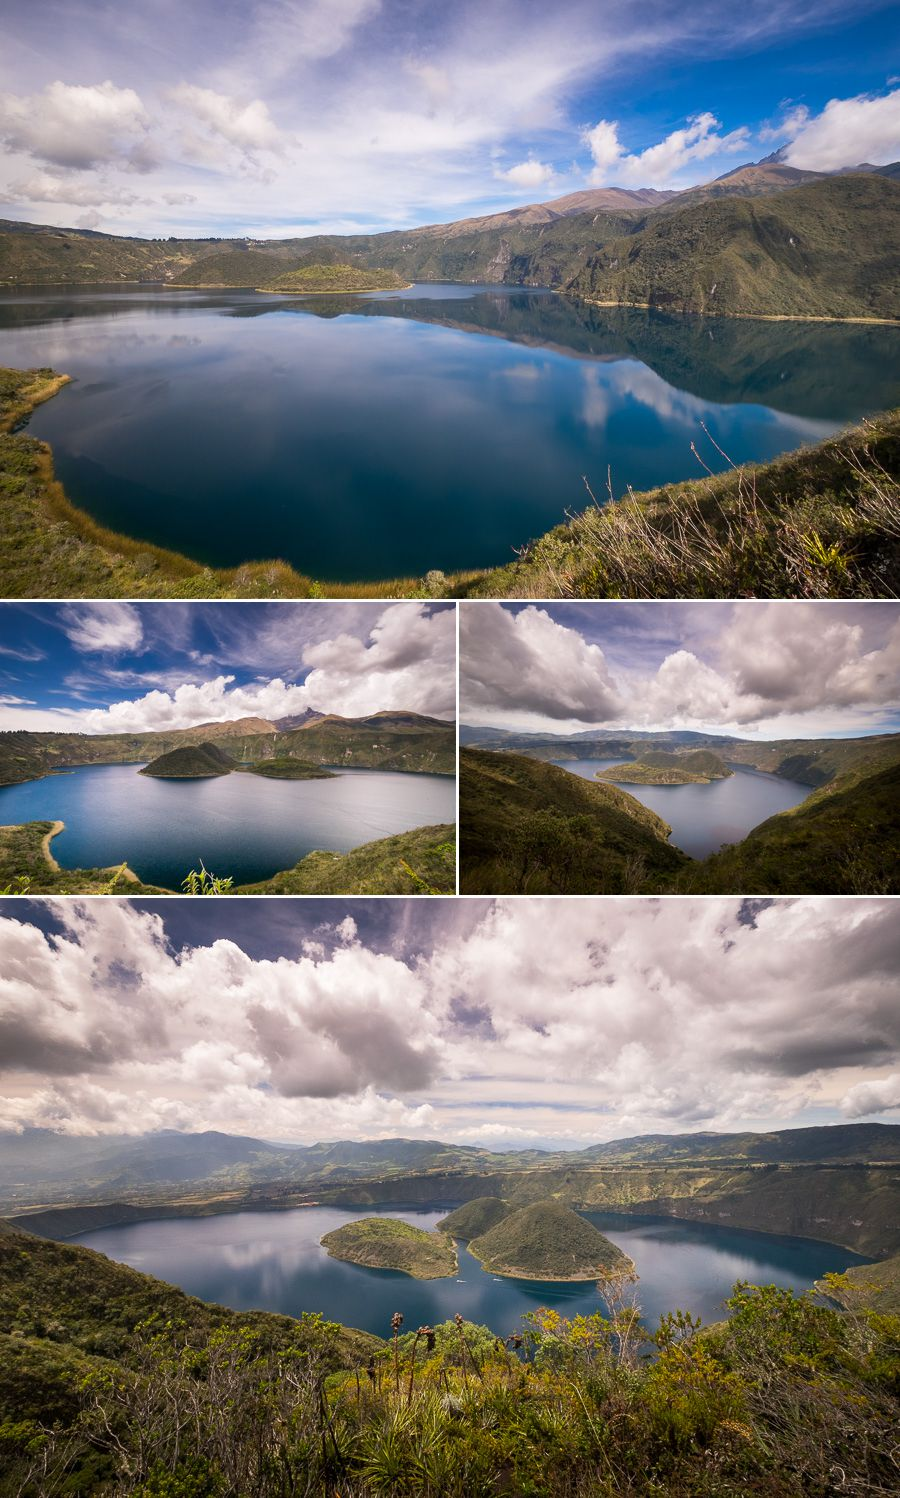 Various views of Laguna Cuicocha, taken while hiking the crater rim near near Otavalo, Ecuador